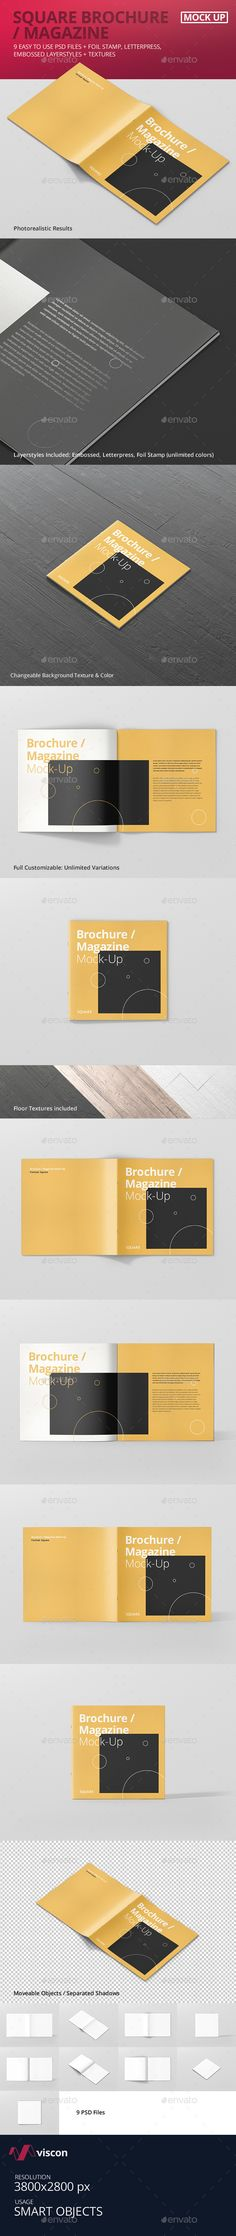 Square Brochure / Magazine PSD Mock-Up Template • Only available here ➝ http://graphicriver.net/item/square-brochure-magazine-mockup/16567594?ref=pxcr